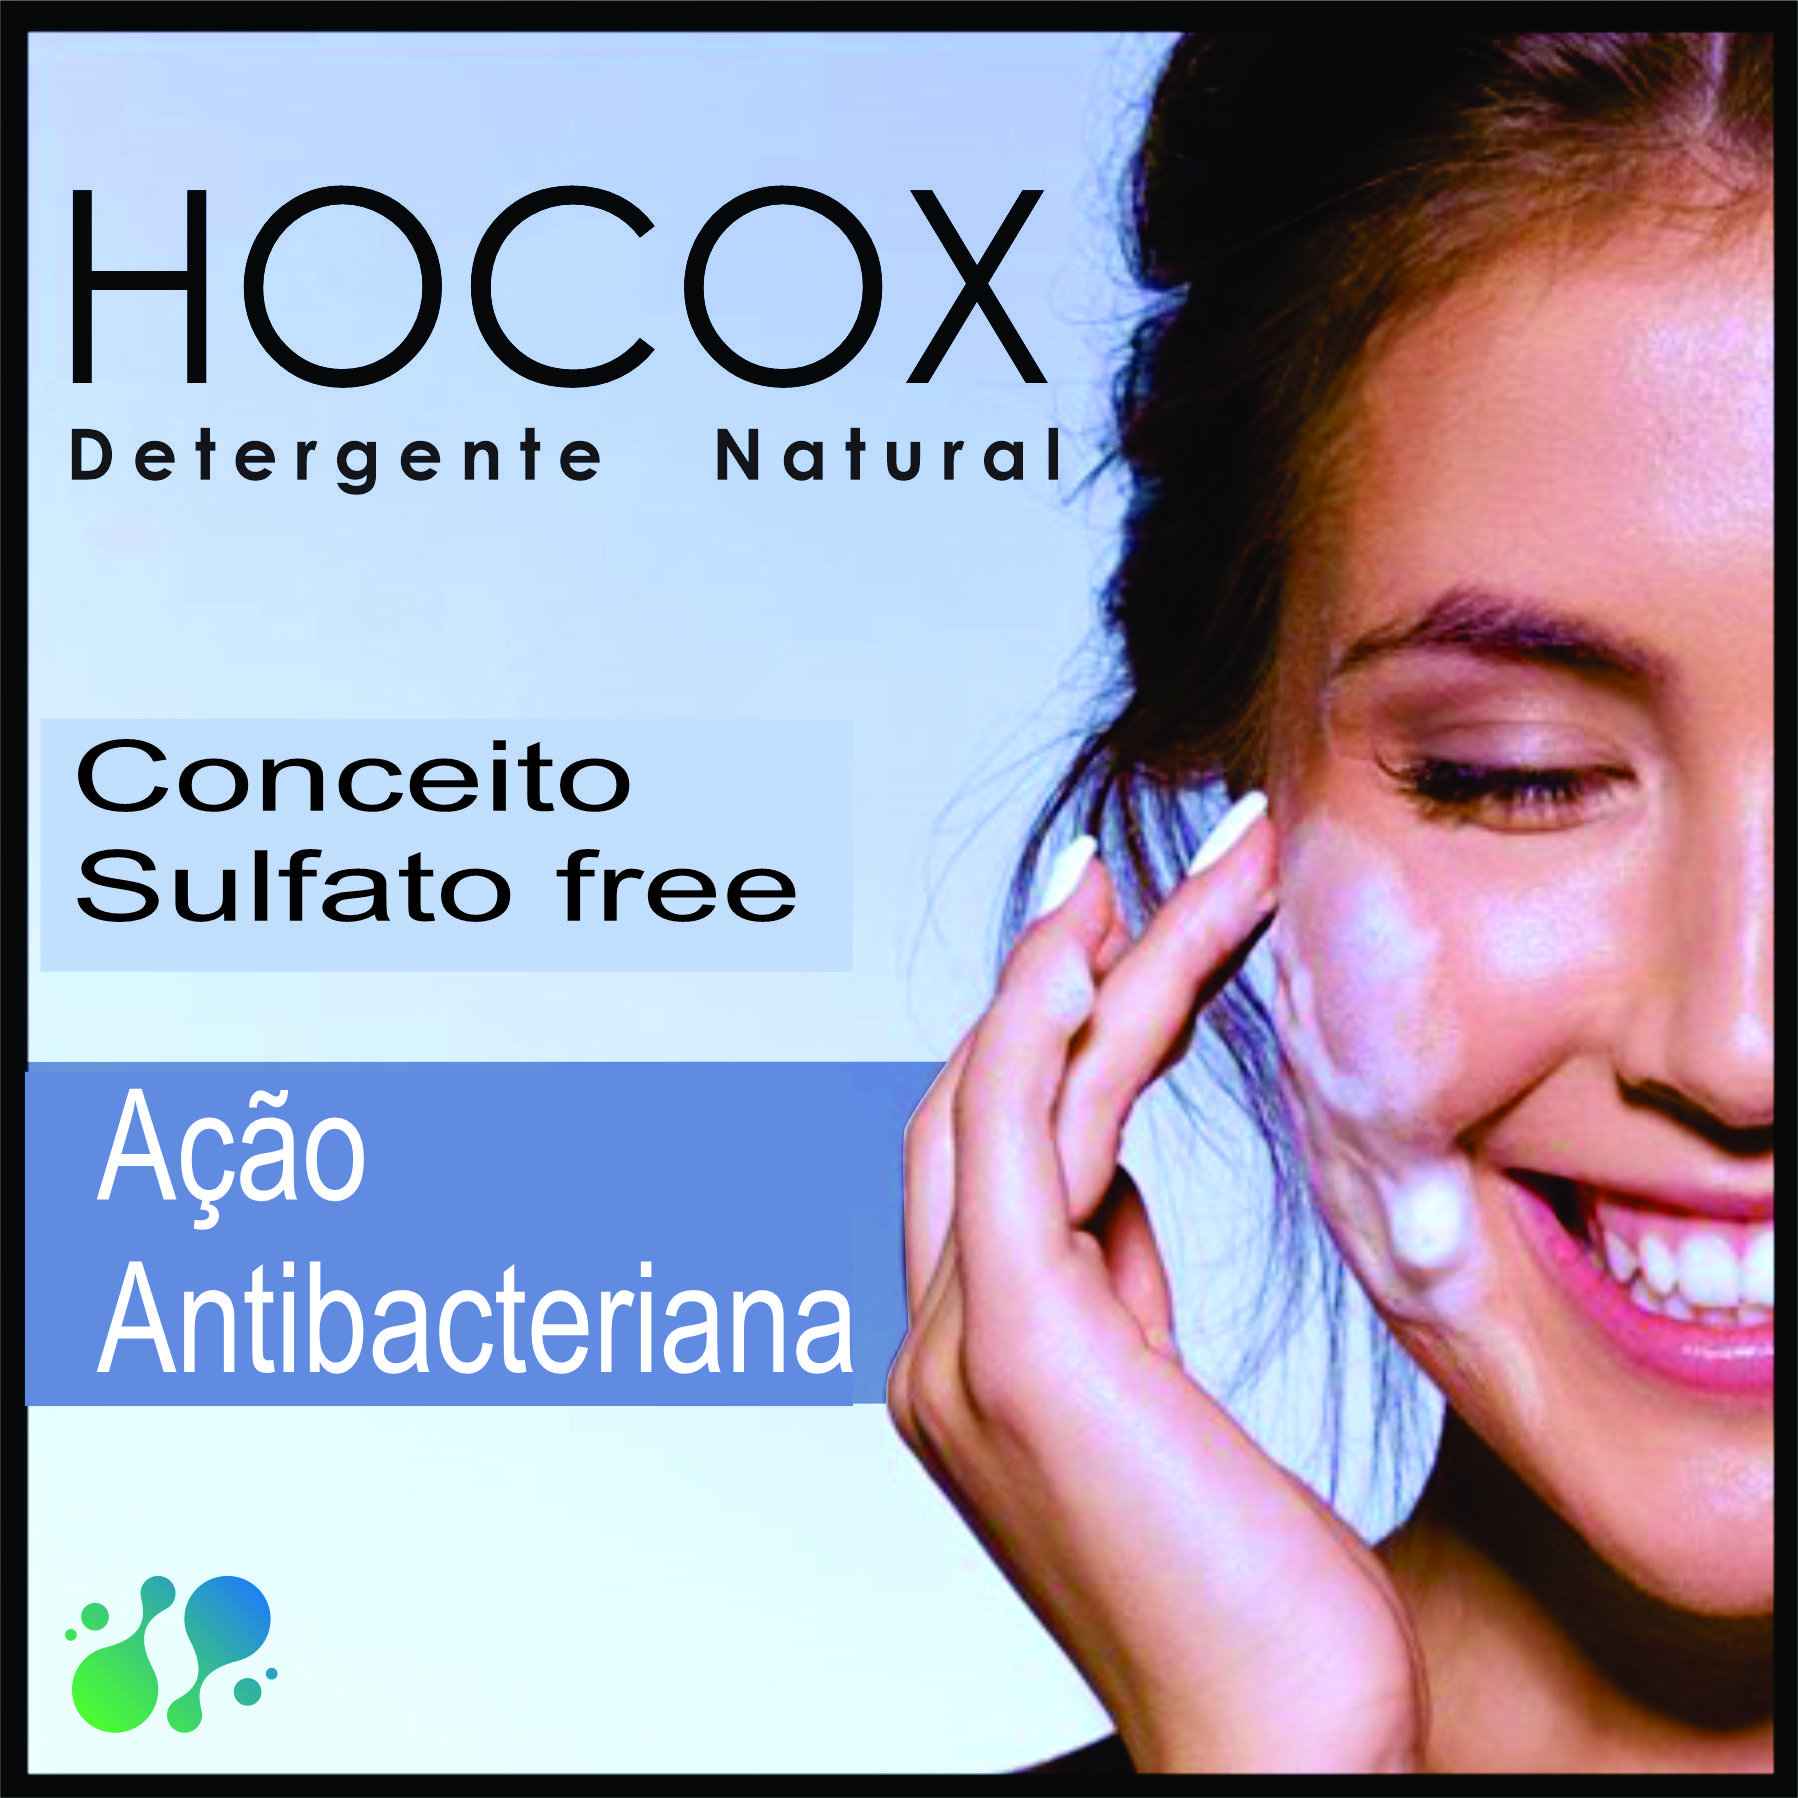 HOCOX | EXCLUSIVO DETERGENTE NATURAL